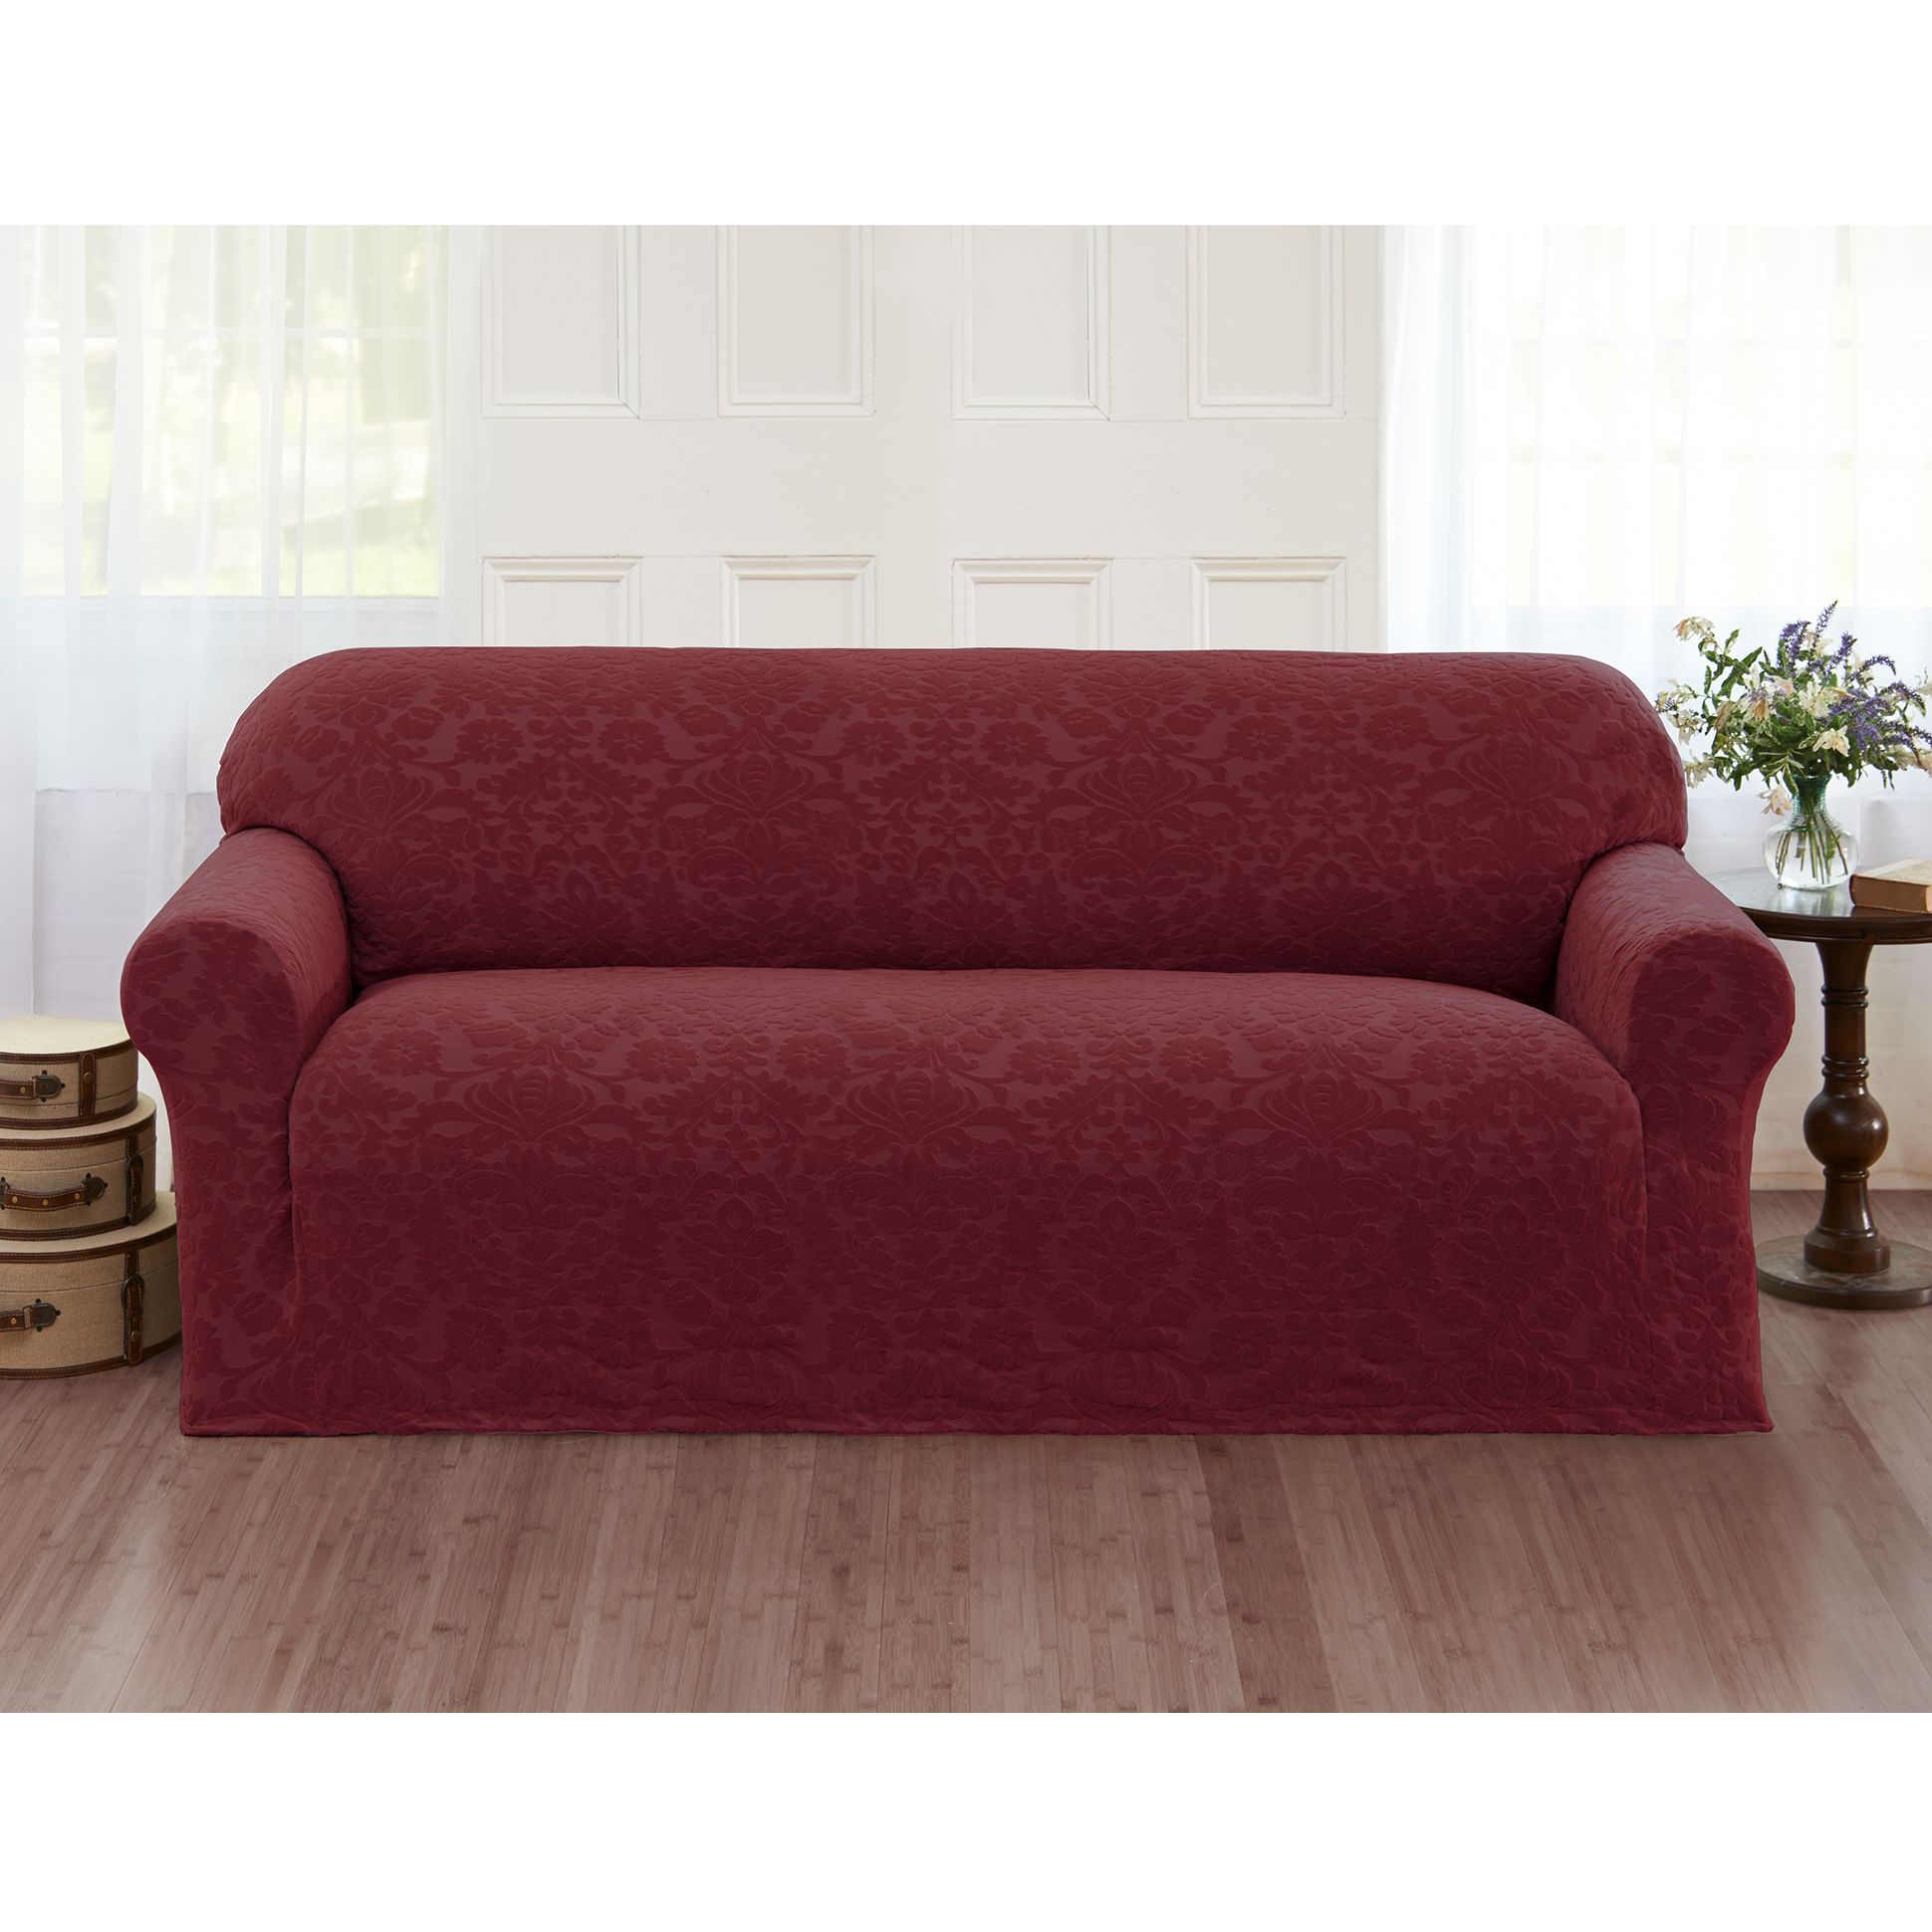 Sanctuary Velvet Damask Stretch Sofa Slipcover by Sanctuary